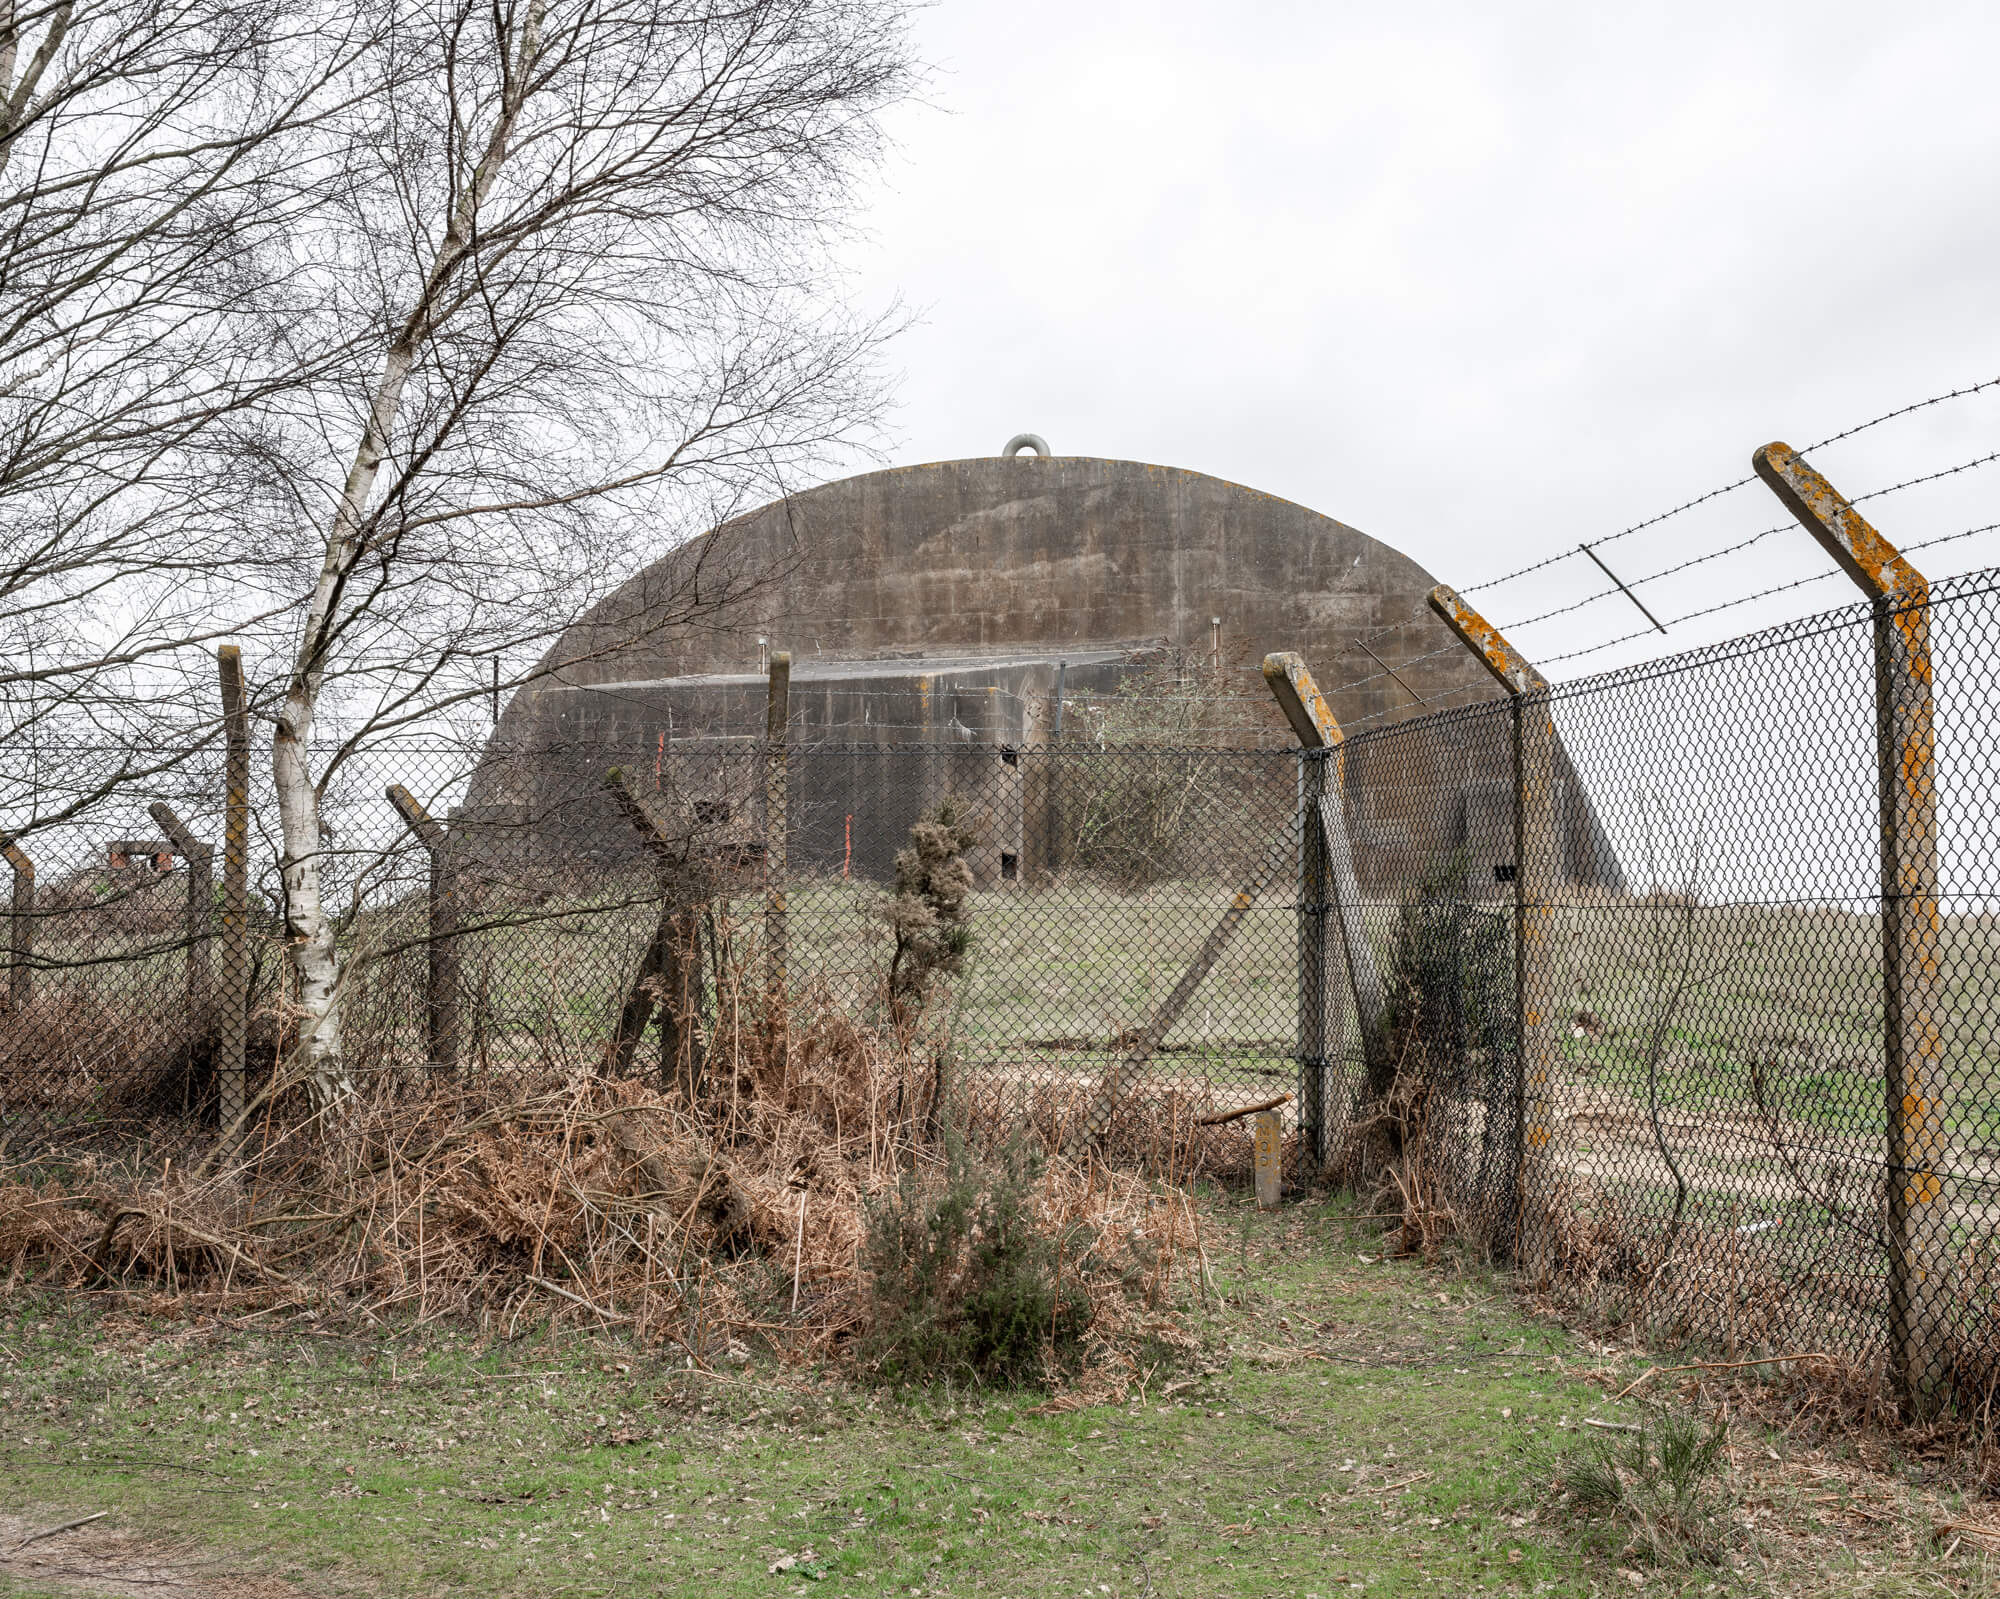 Disused USAF bunkers dating back to the Cold War. RAF Woodbridge and its sister base RAF Bentwaters supposedly stored American nuclear weapons during the Cold War.